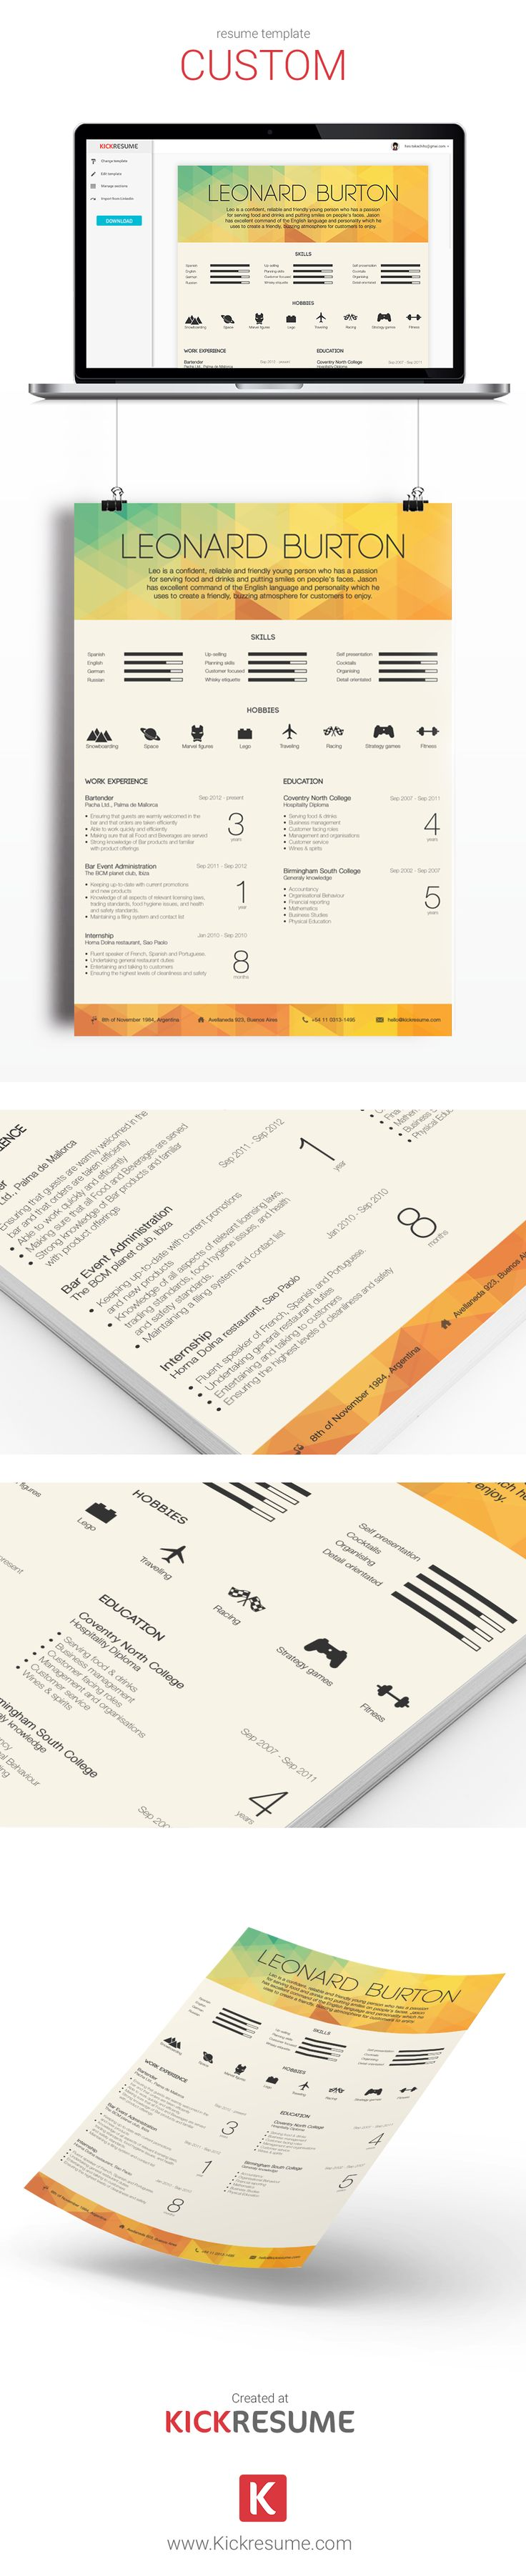 choose one of our templates created by designers and approved by recruiters wwwkickresume